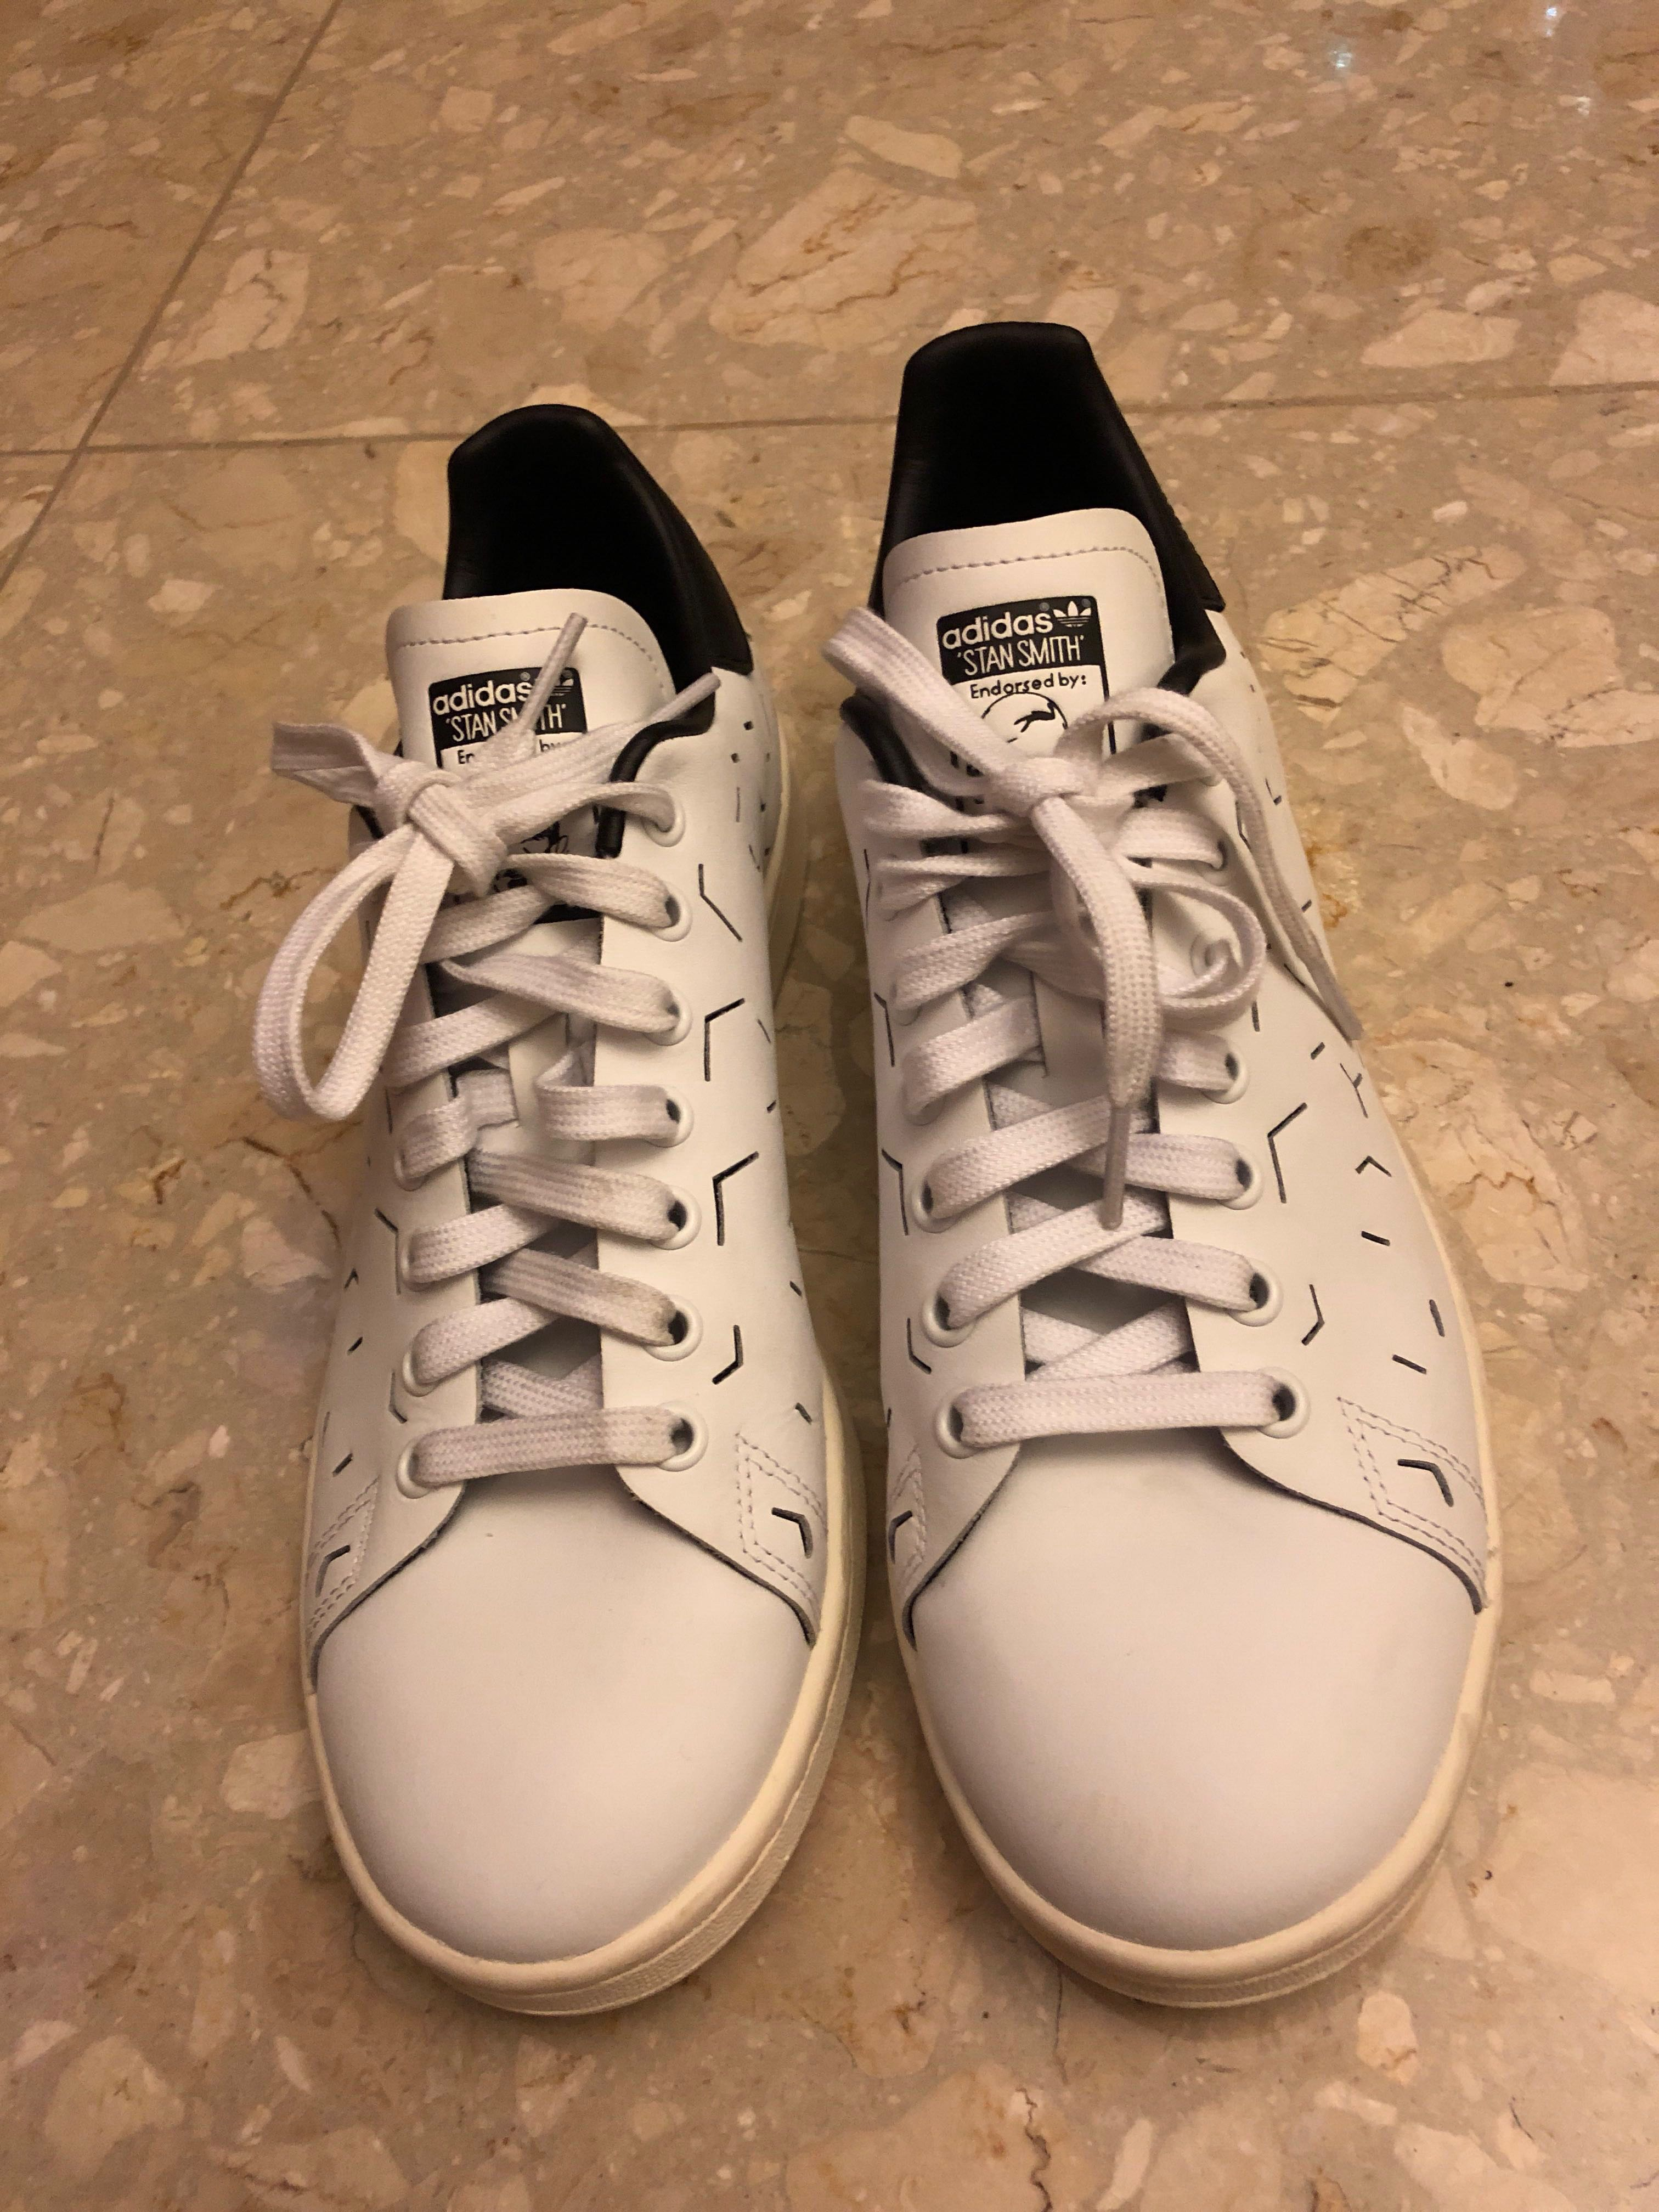 first rate 30601 26df9 Adidas Stan Smith Shoes US 9 , Men's Fashion, Footwear ...